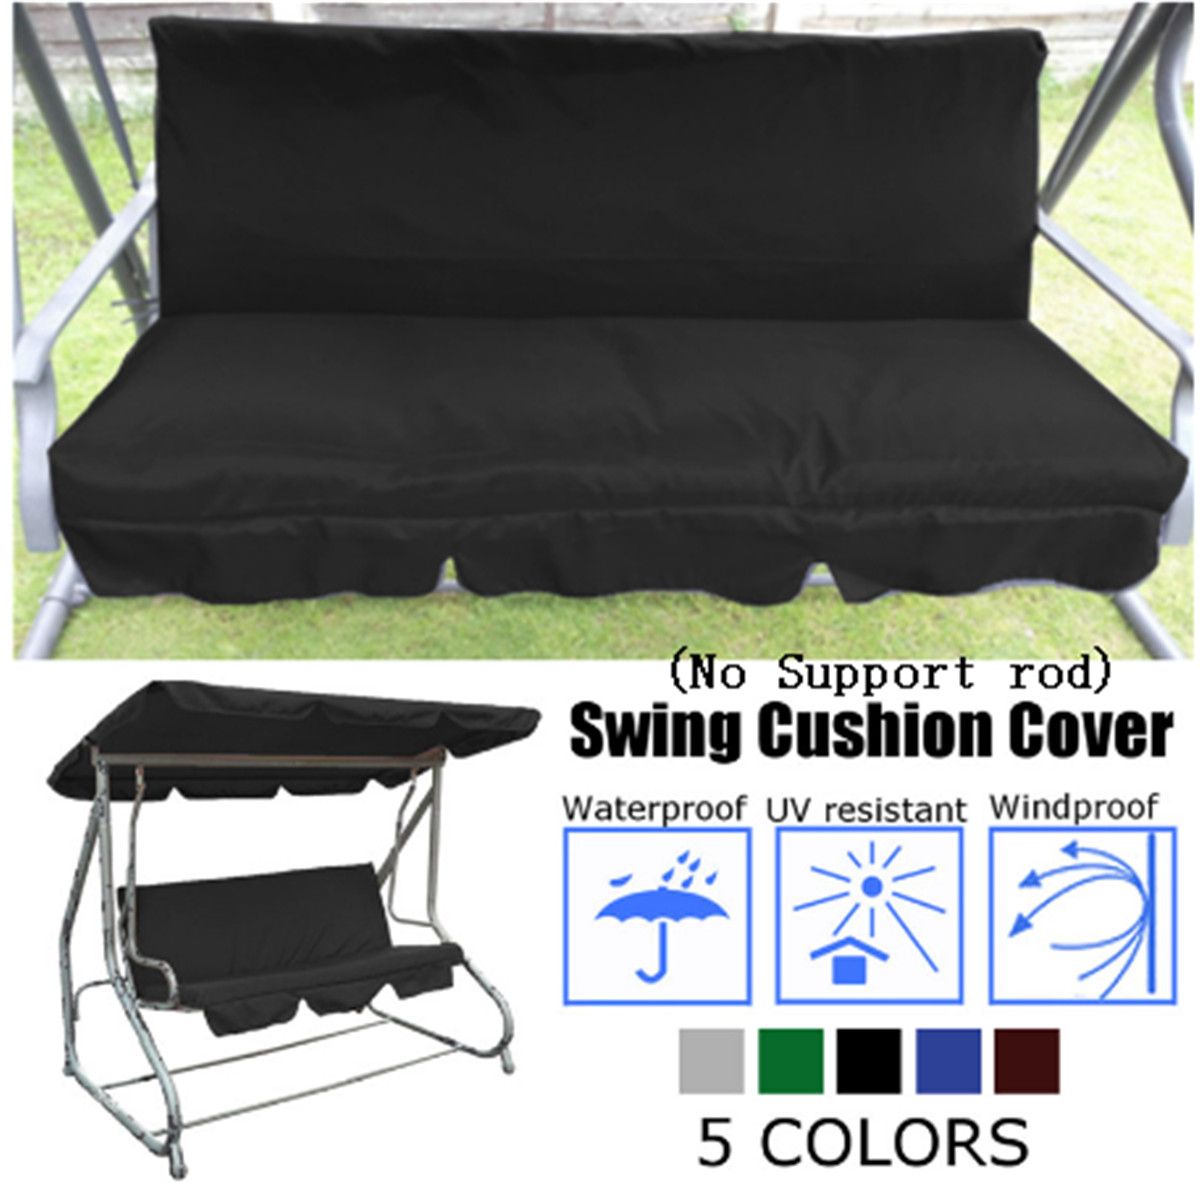 3 Seater Garden Swing Cushion 5 Colors Waterproof Dustproof Chair Replacement Canopy Spare Fabric Cover Dust Covers 150CM